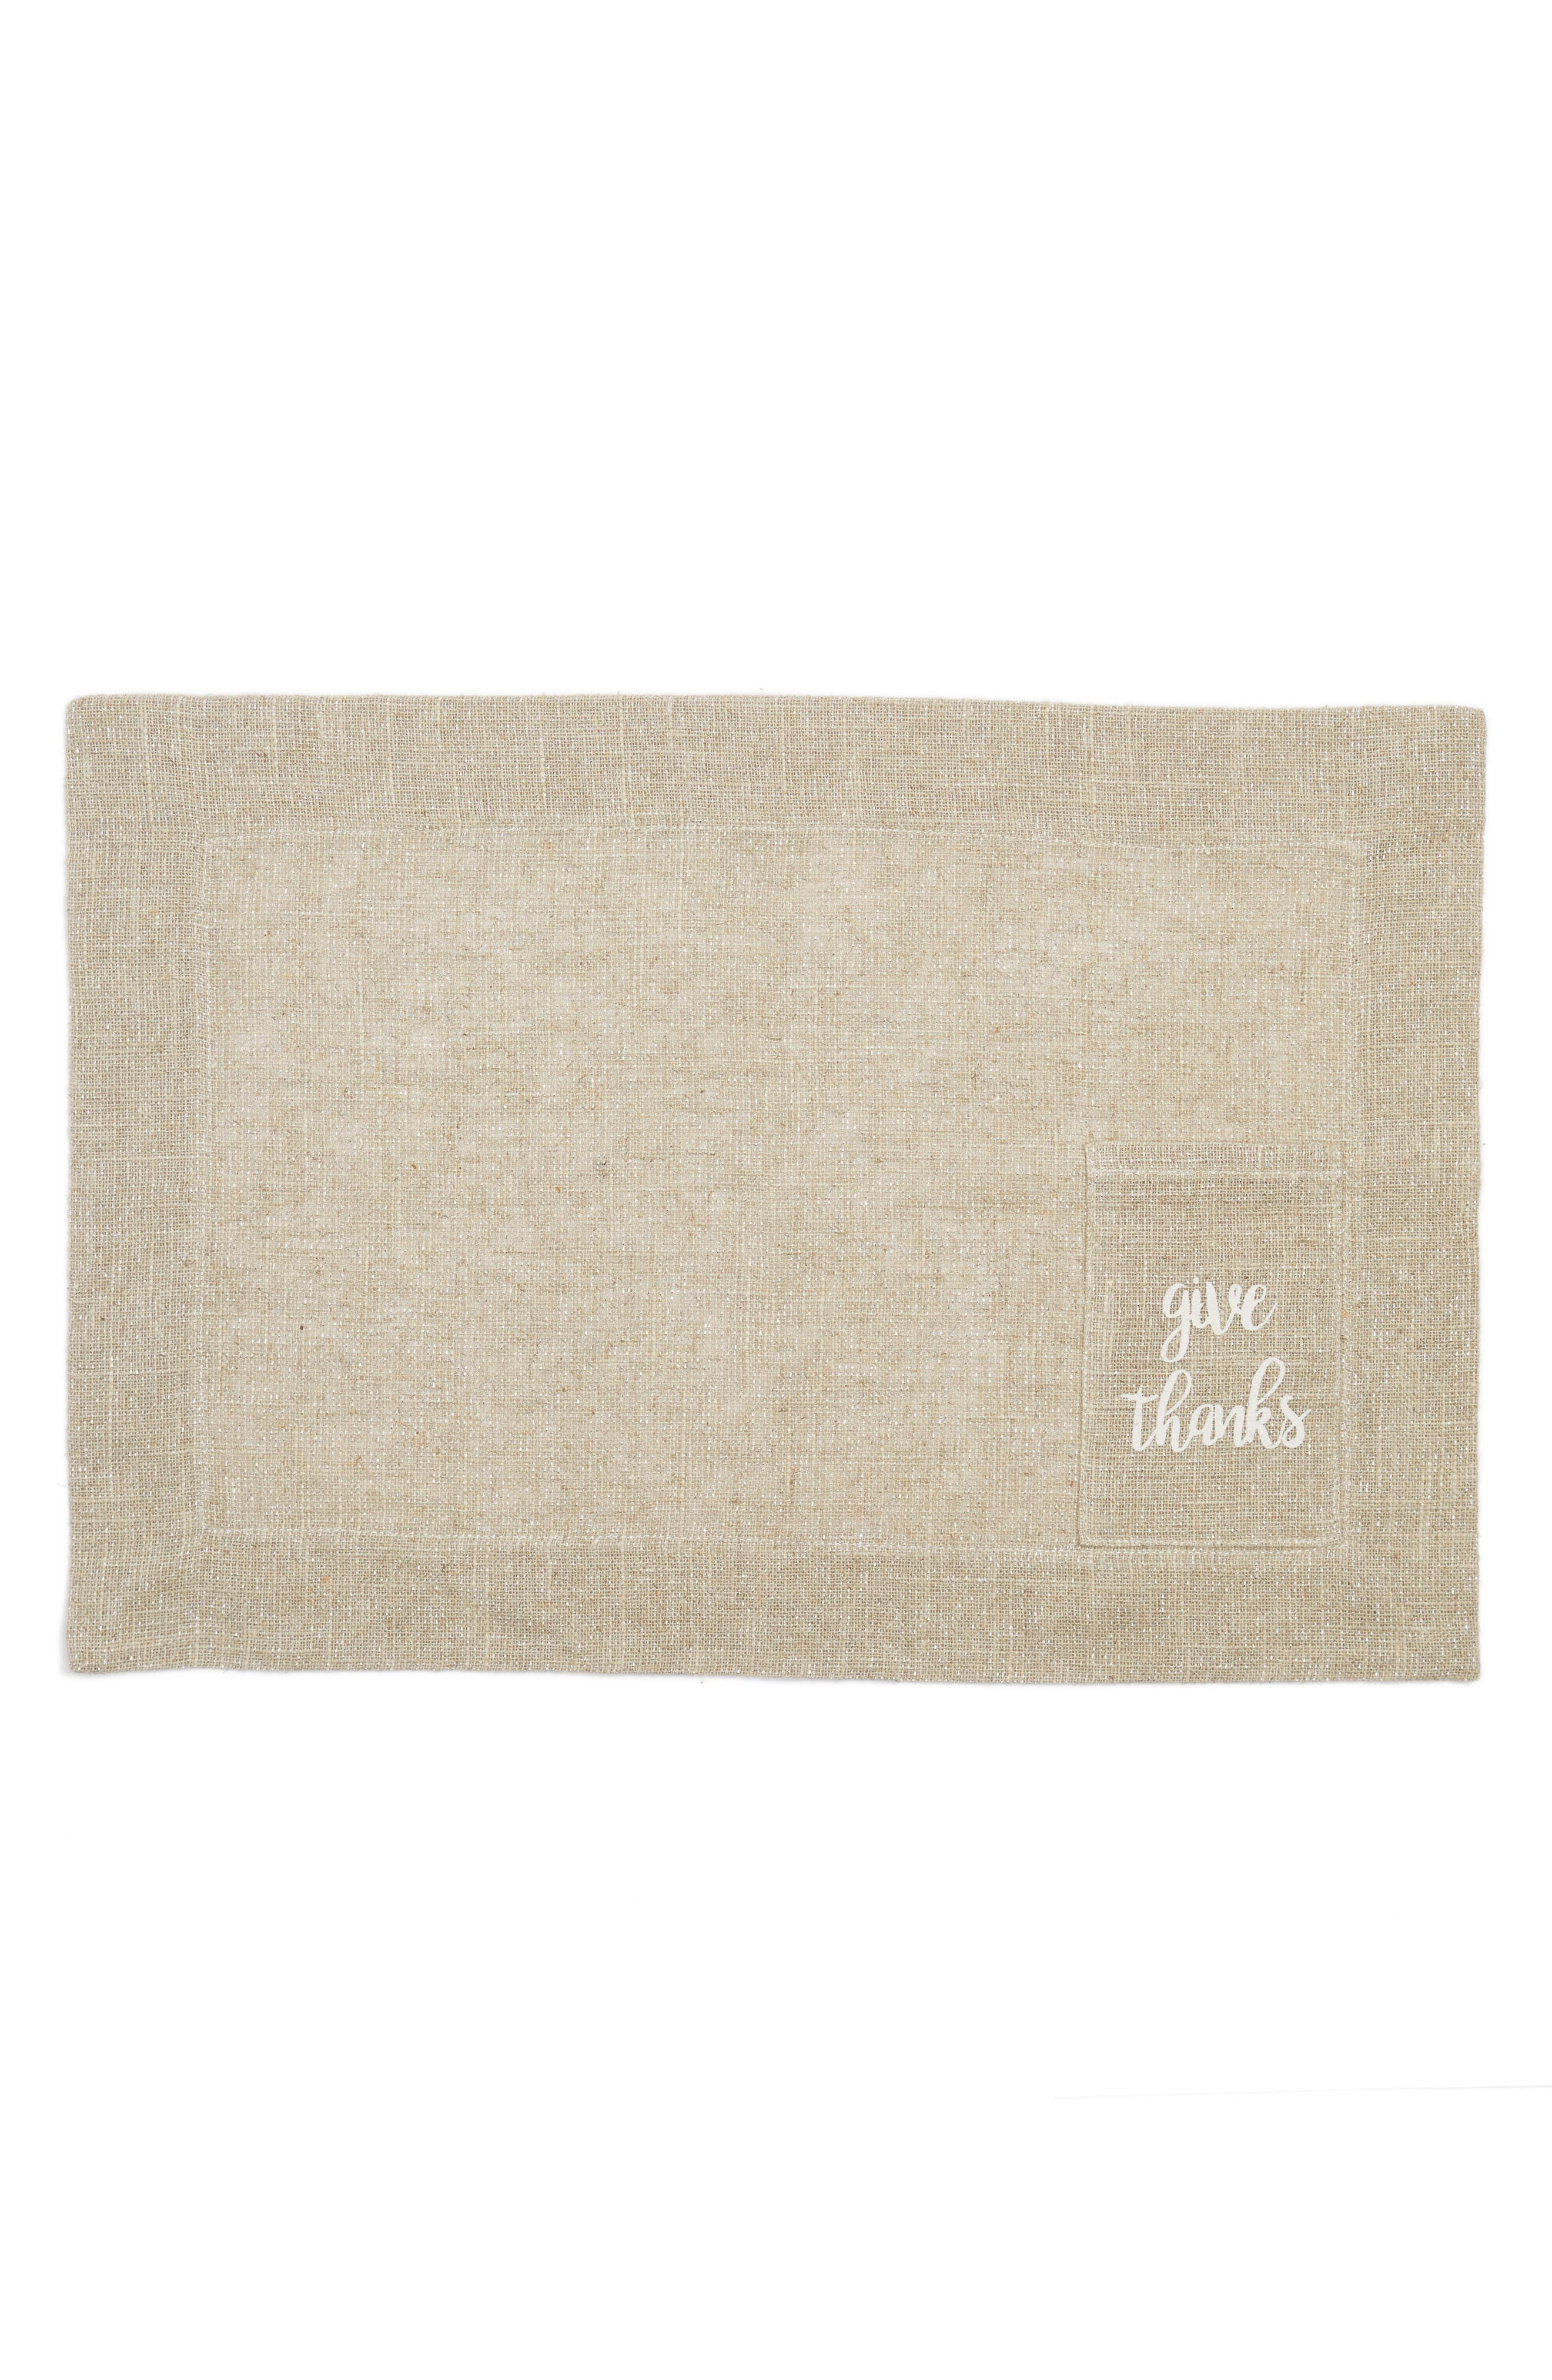 Give Thanks Placemat,                         Main,                         color, Natural